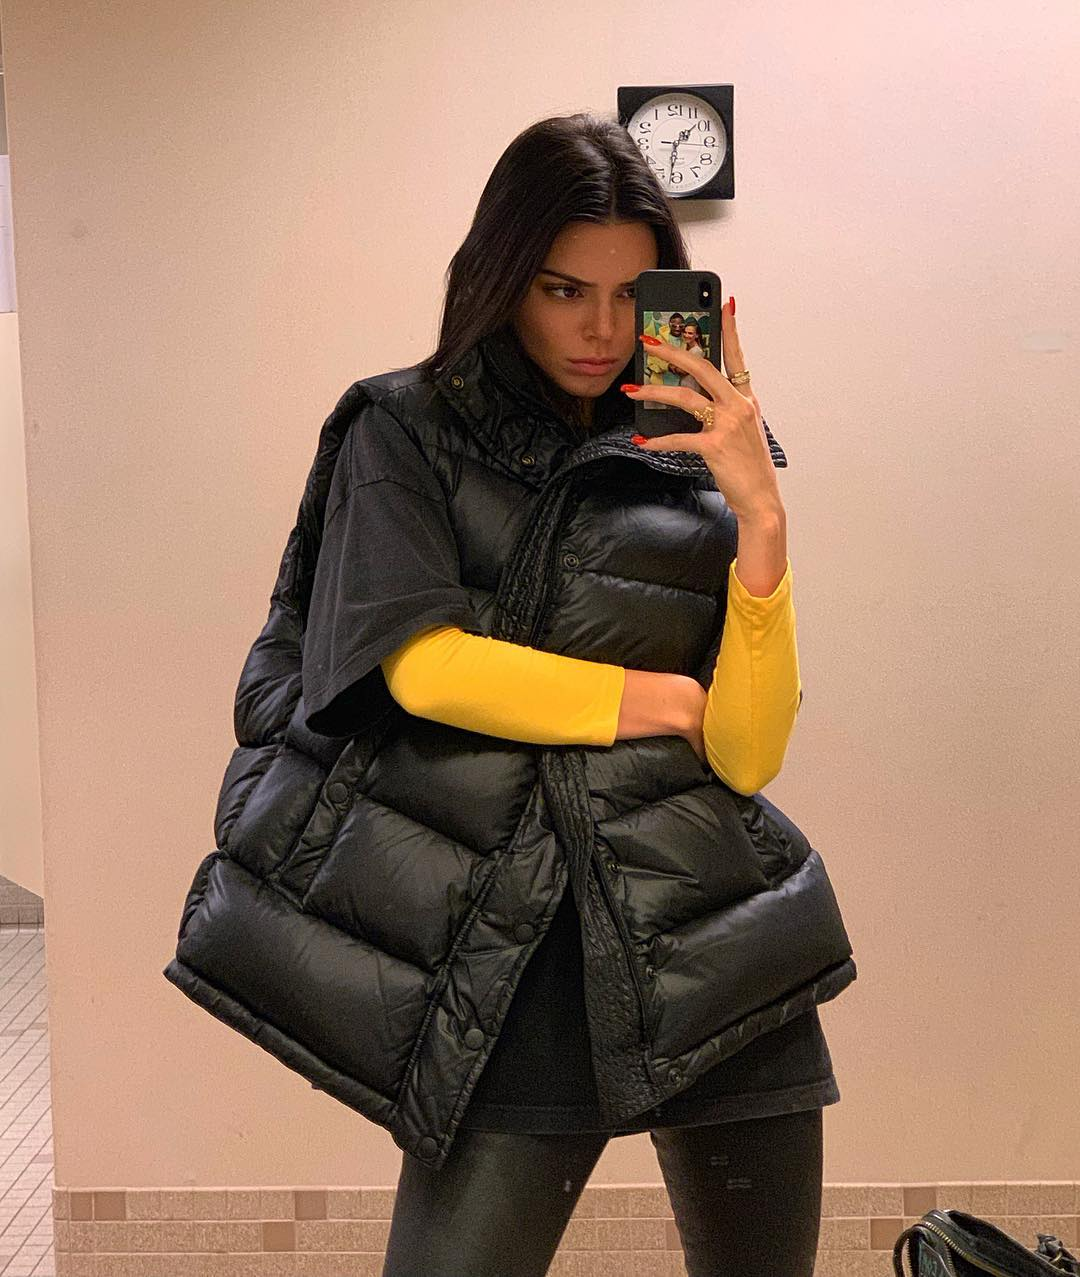 Kendall Jenner wearing a relaxed fit black puffer jacket with side pockets